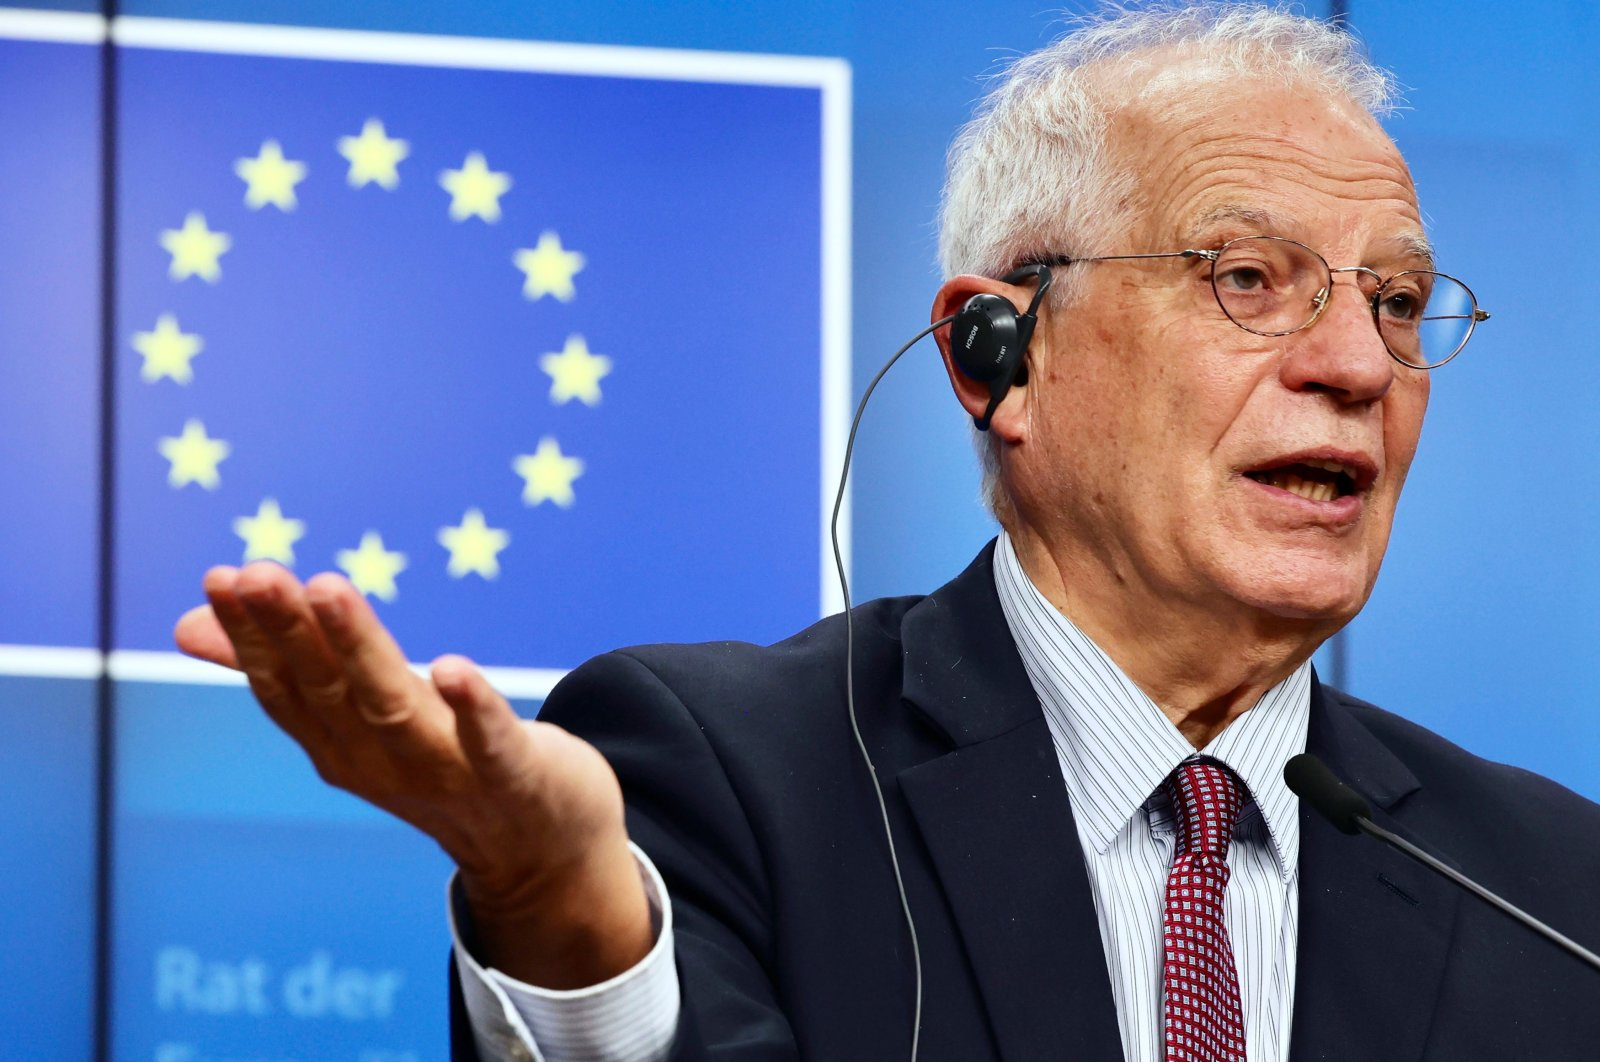 High Representative of the Union for Foreign Affairs and Security Policy Josep Borrell speaks during a news conference following a foreign affairs ministers' video conference meeting at the European Council headquarters in Brussels, Nov. 19, 2020. (AFP Photo)